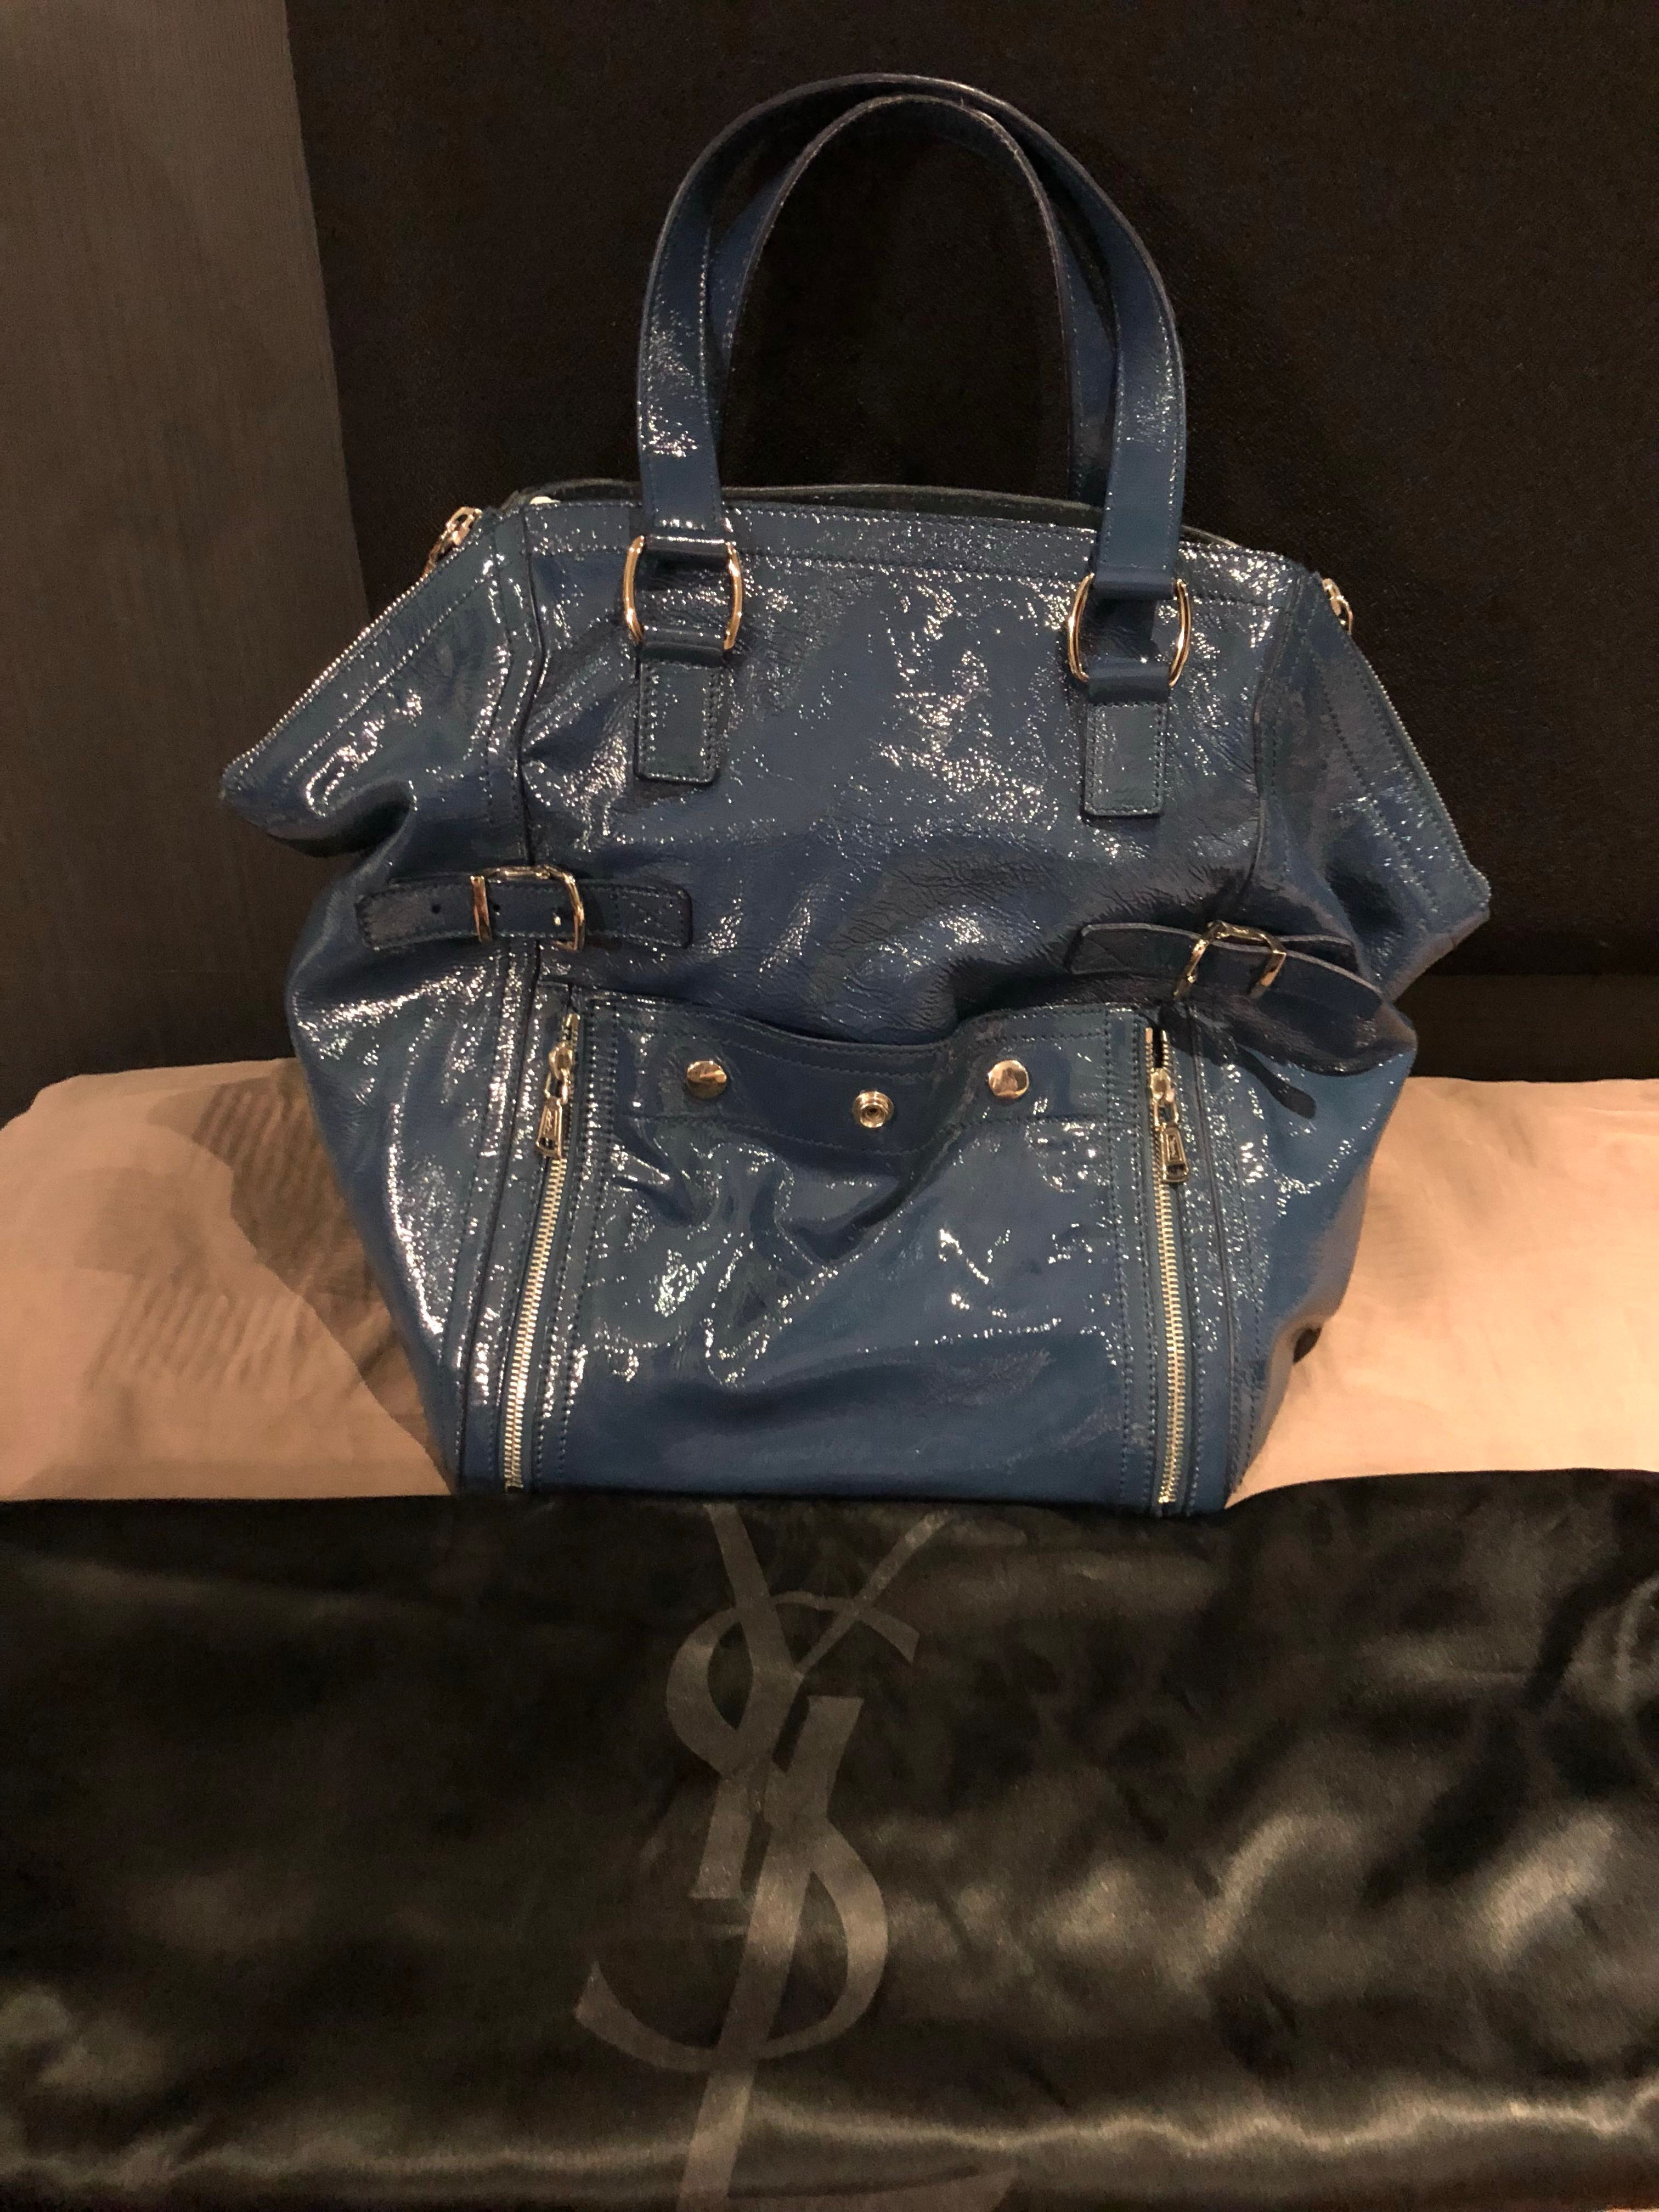 5eaefff48c4 YSL (Saint Laurent) Downtown Tote Bag In Patent Blue Leather, Women's  Fashion, Bags & Wallets, Handbags on Carousell